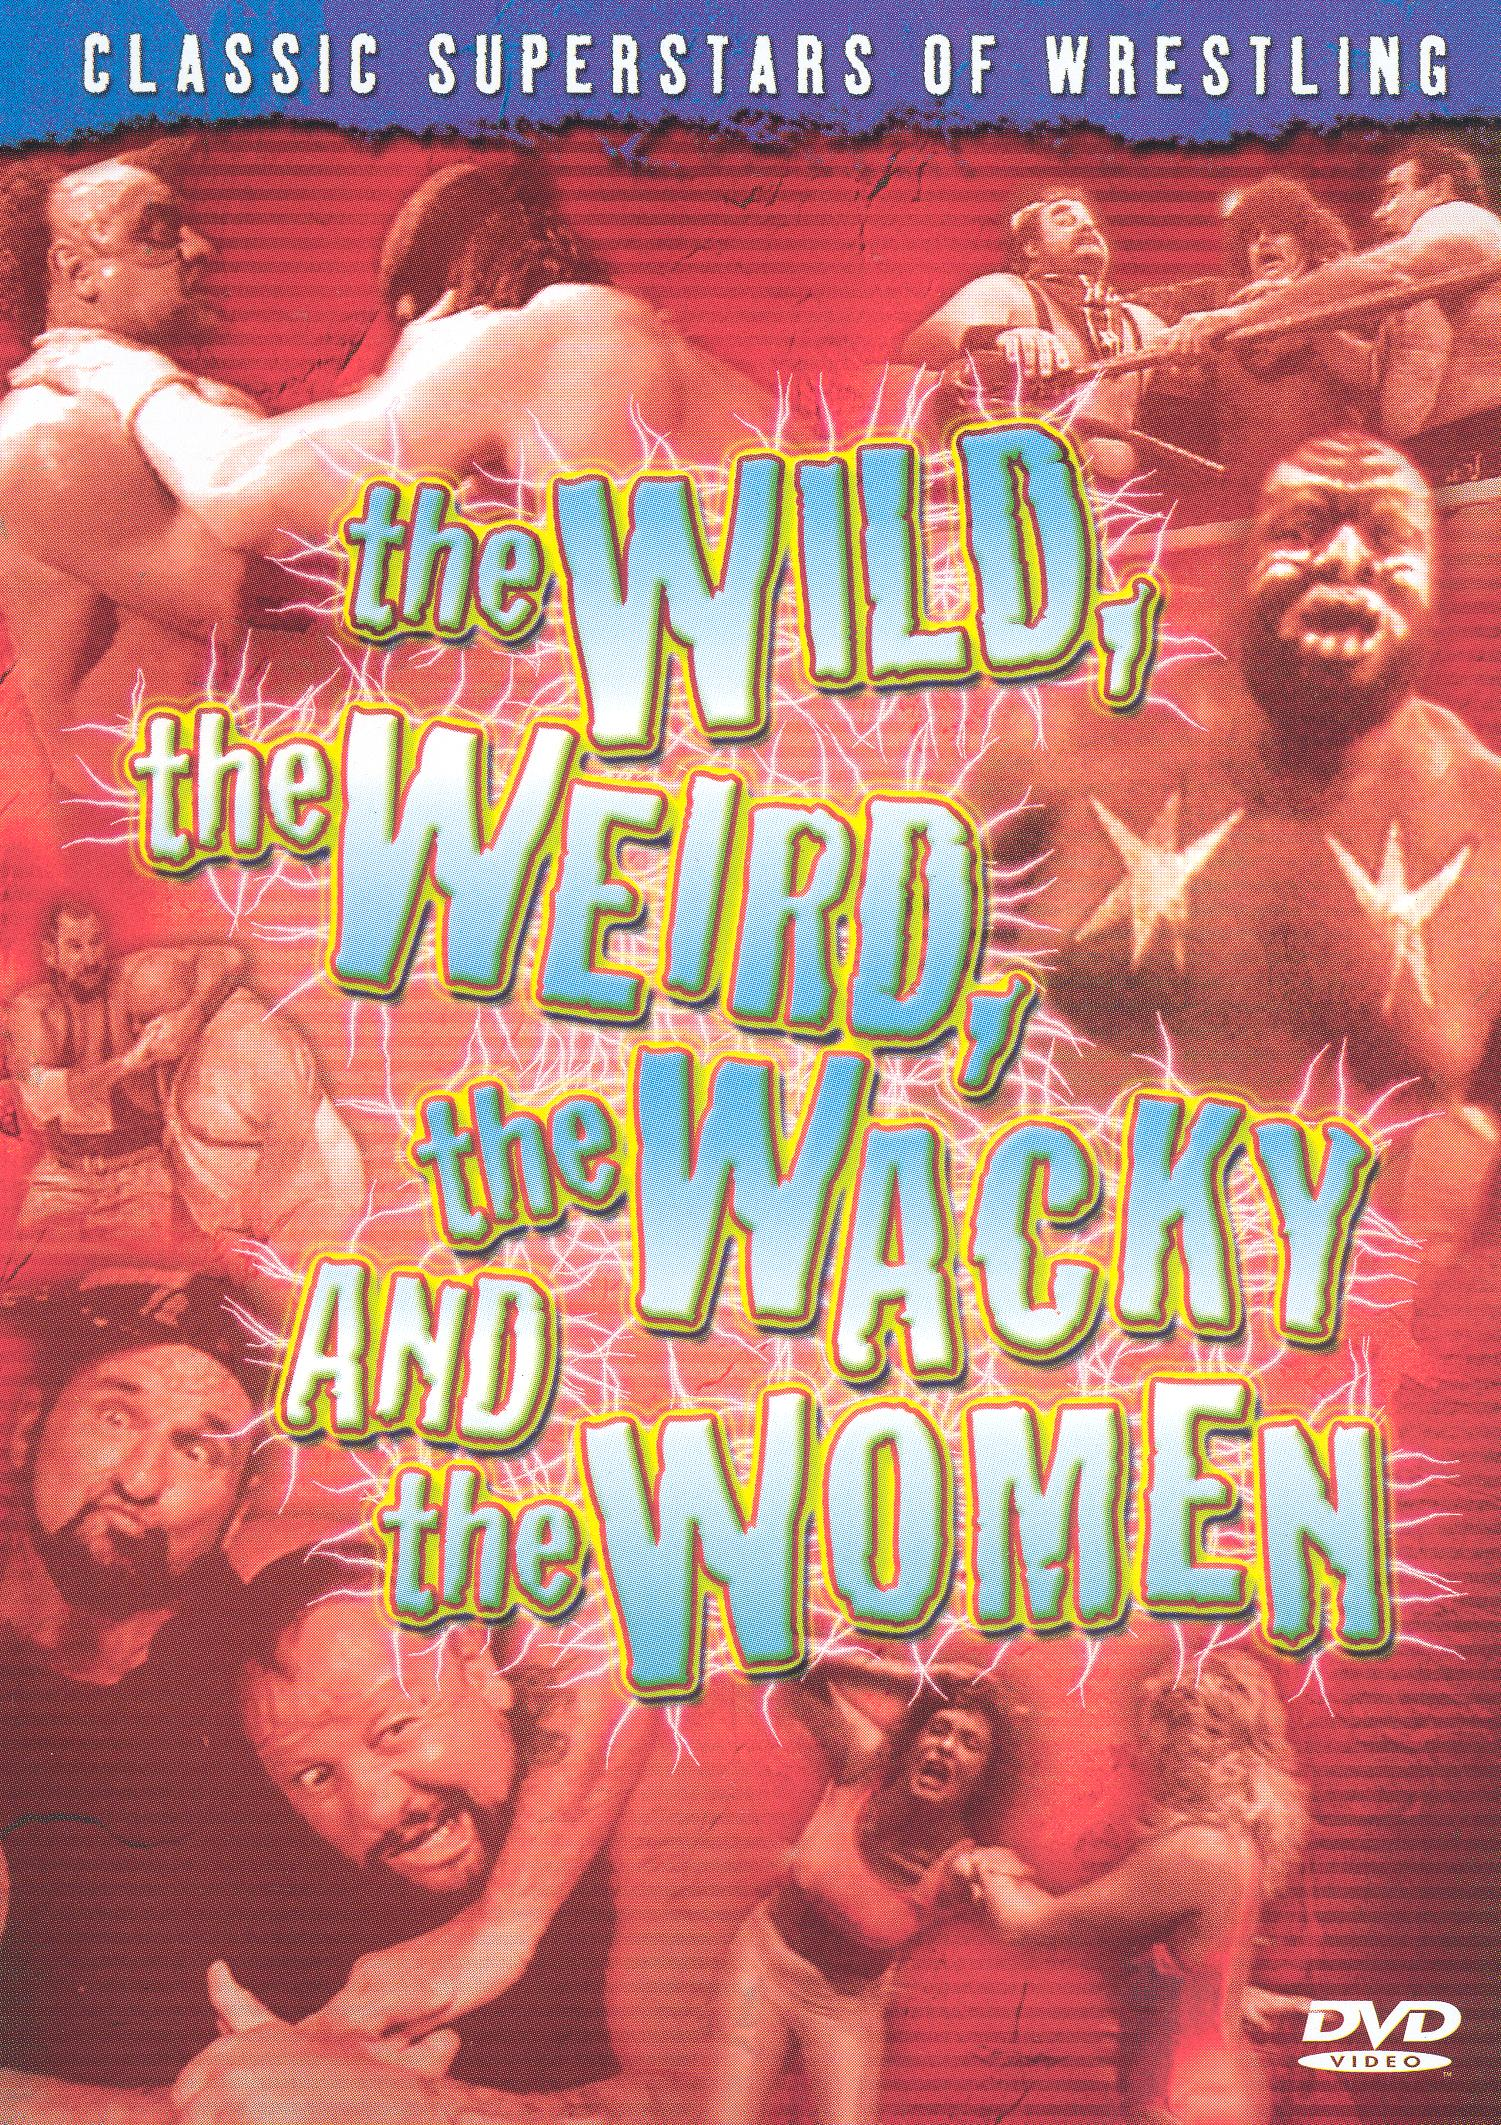 The Wild, the Weird, the Wacky and the Women